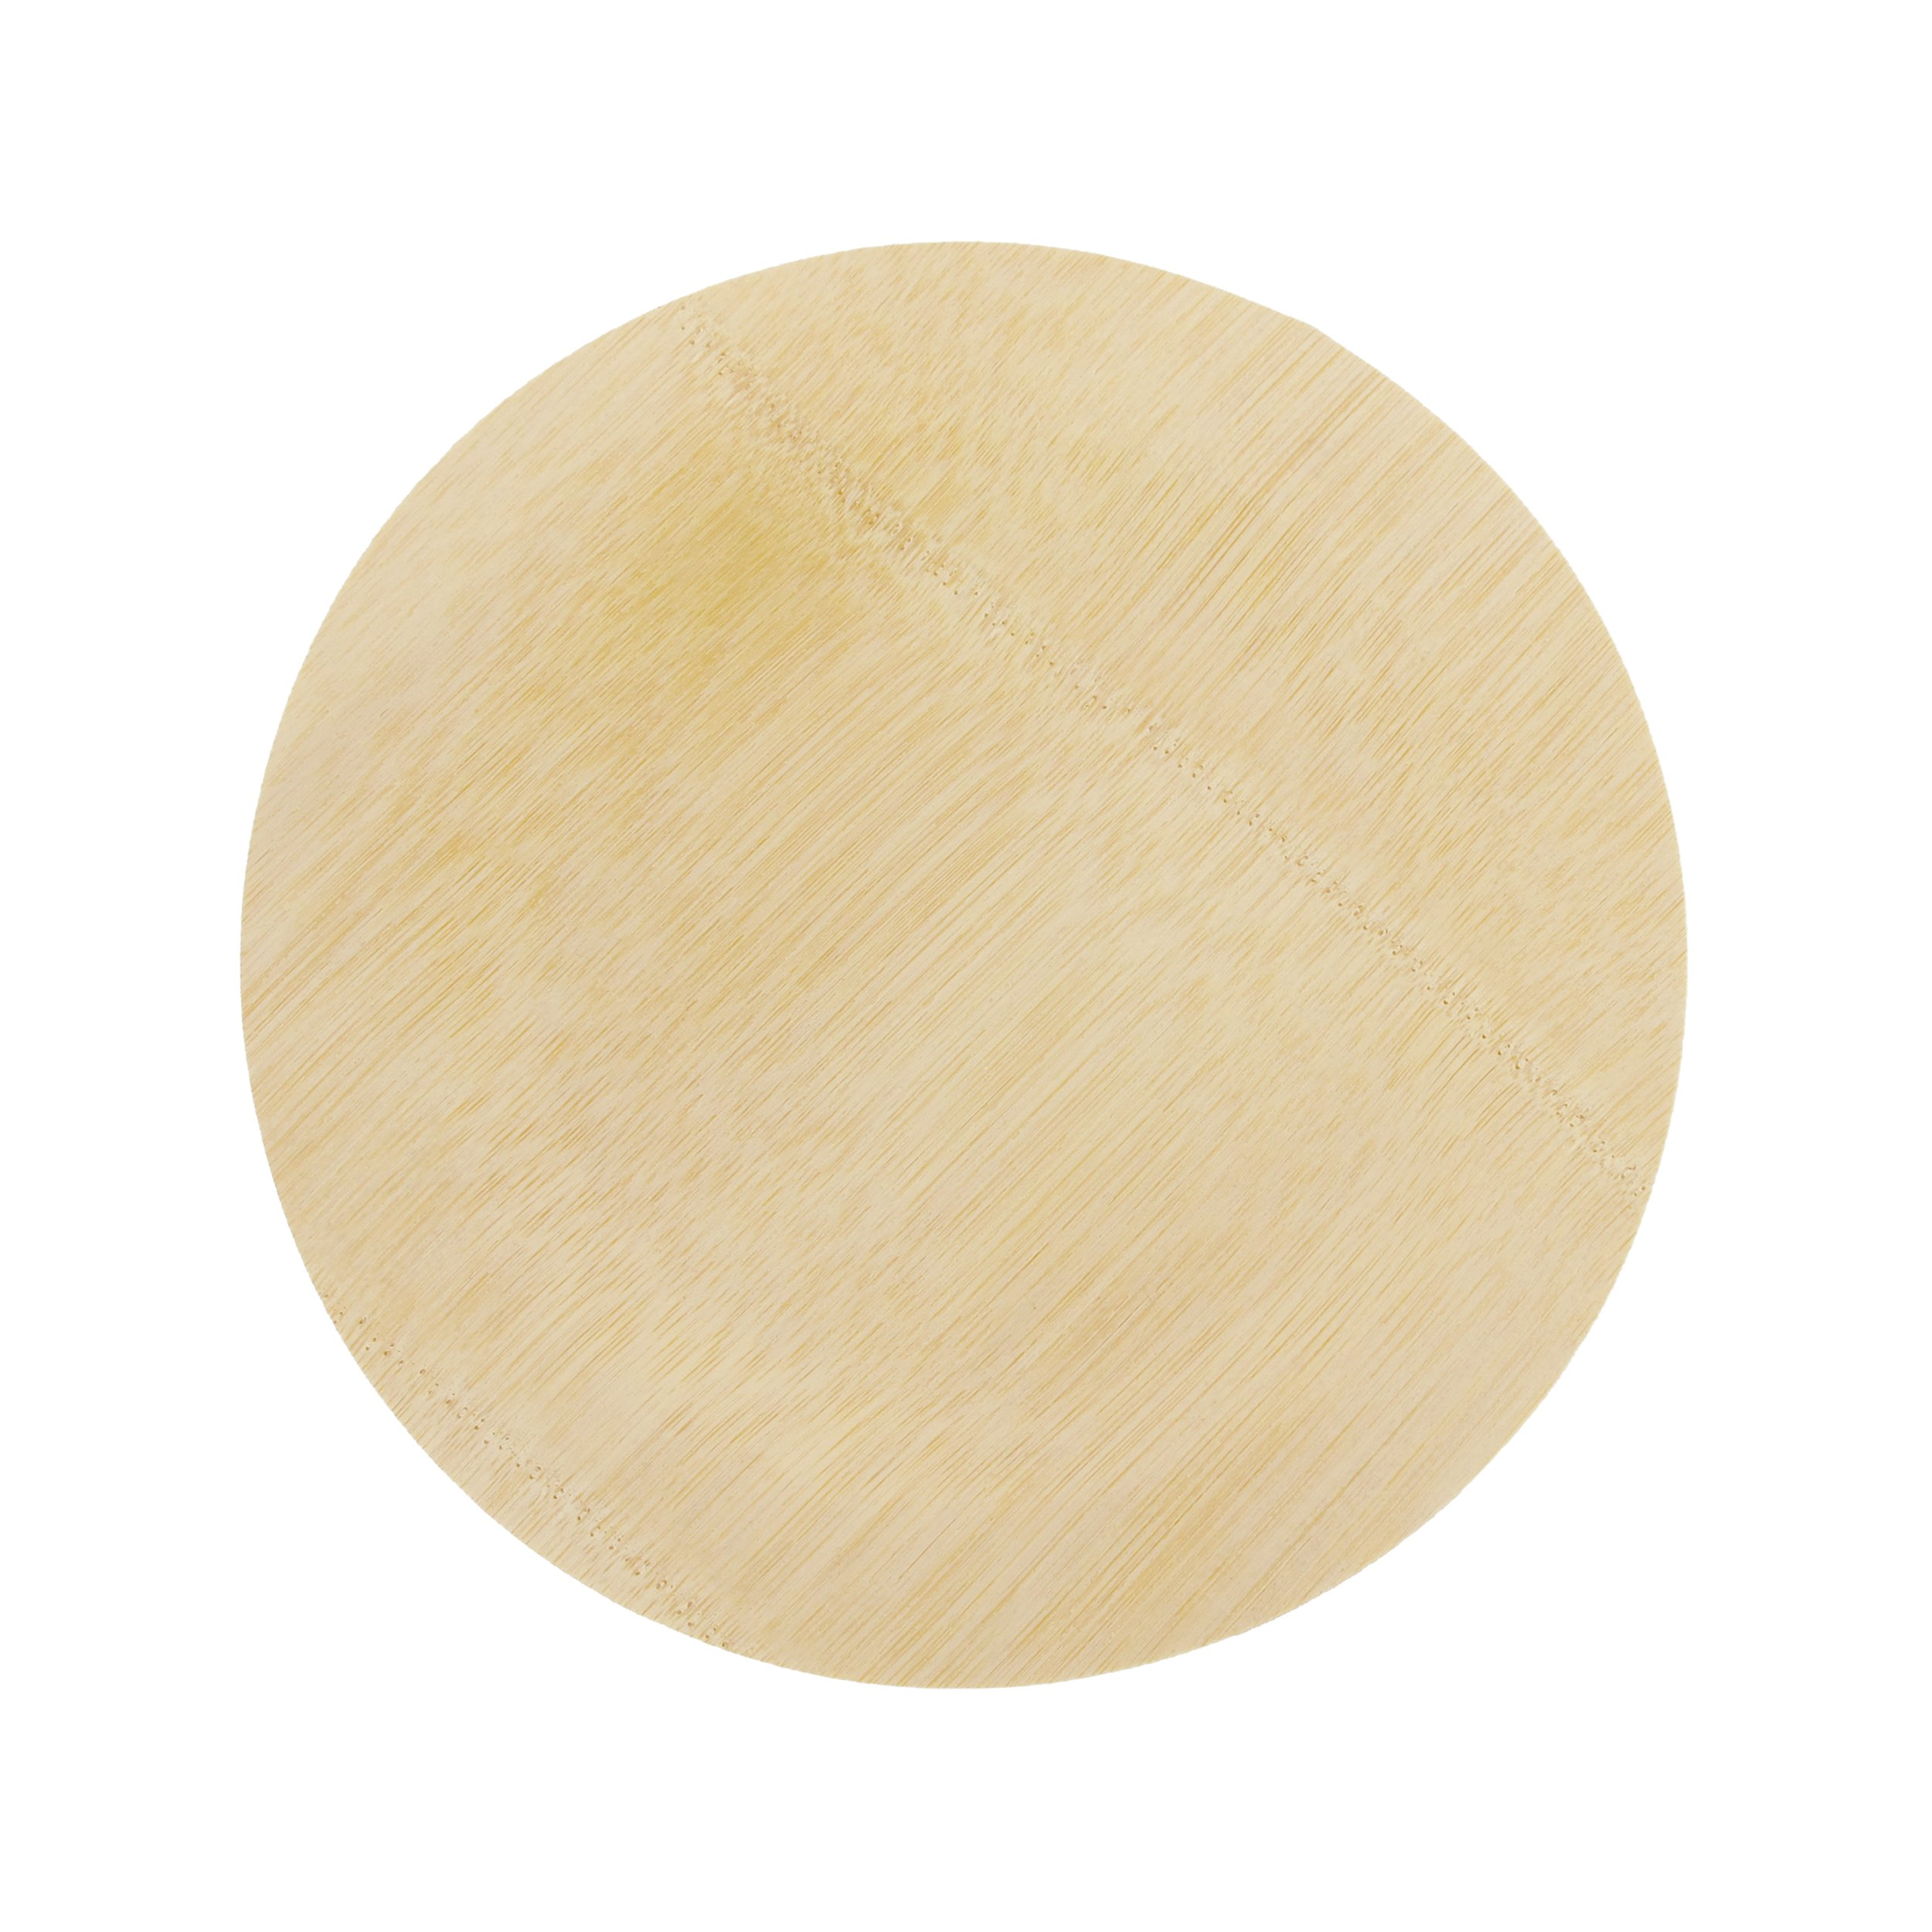 BambooMN Brand - 11'' (28cm) Round Disposable Bamboo Veneer Plates, 24pcs by BambooMN (Image #1)